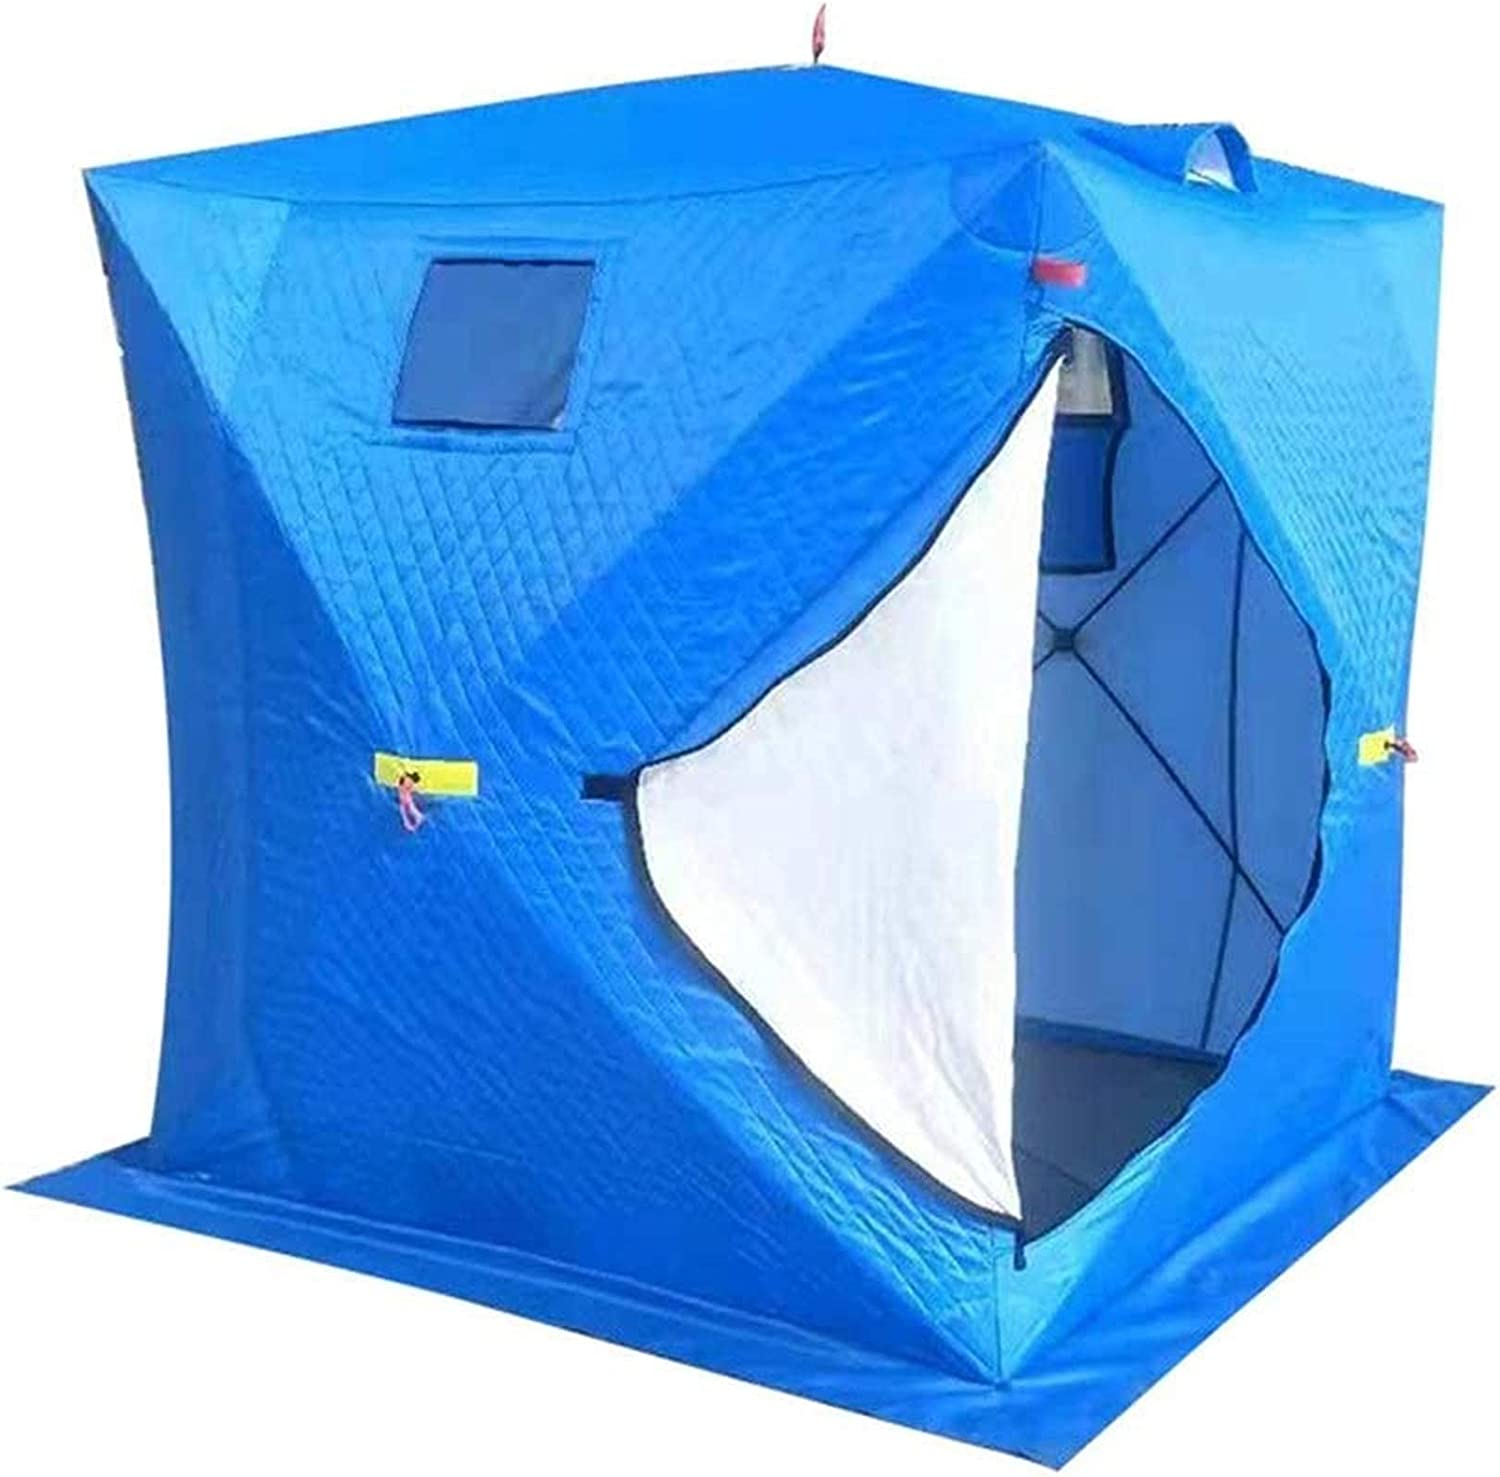 Furren Camping Instant Luxury Tent4 People Outd Pop Detachable 2021 model Portable